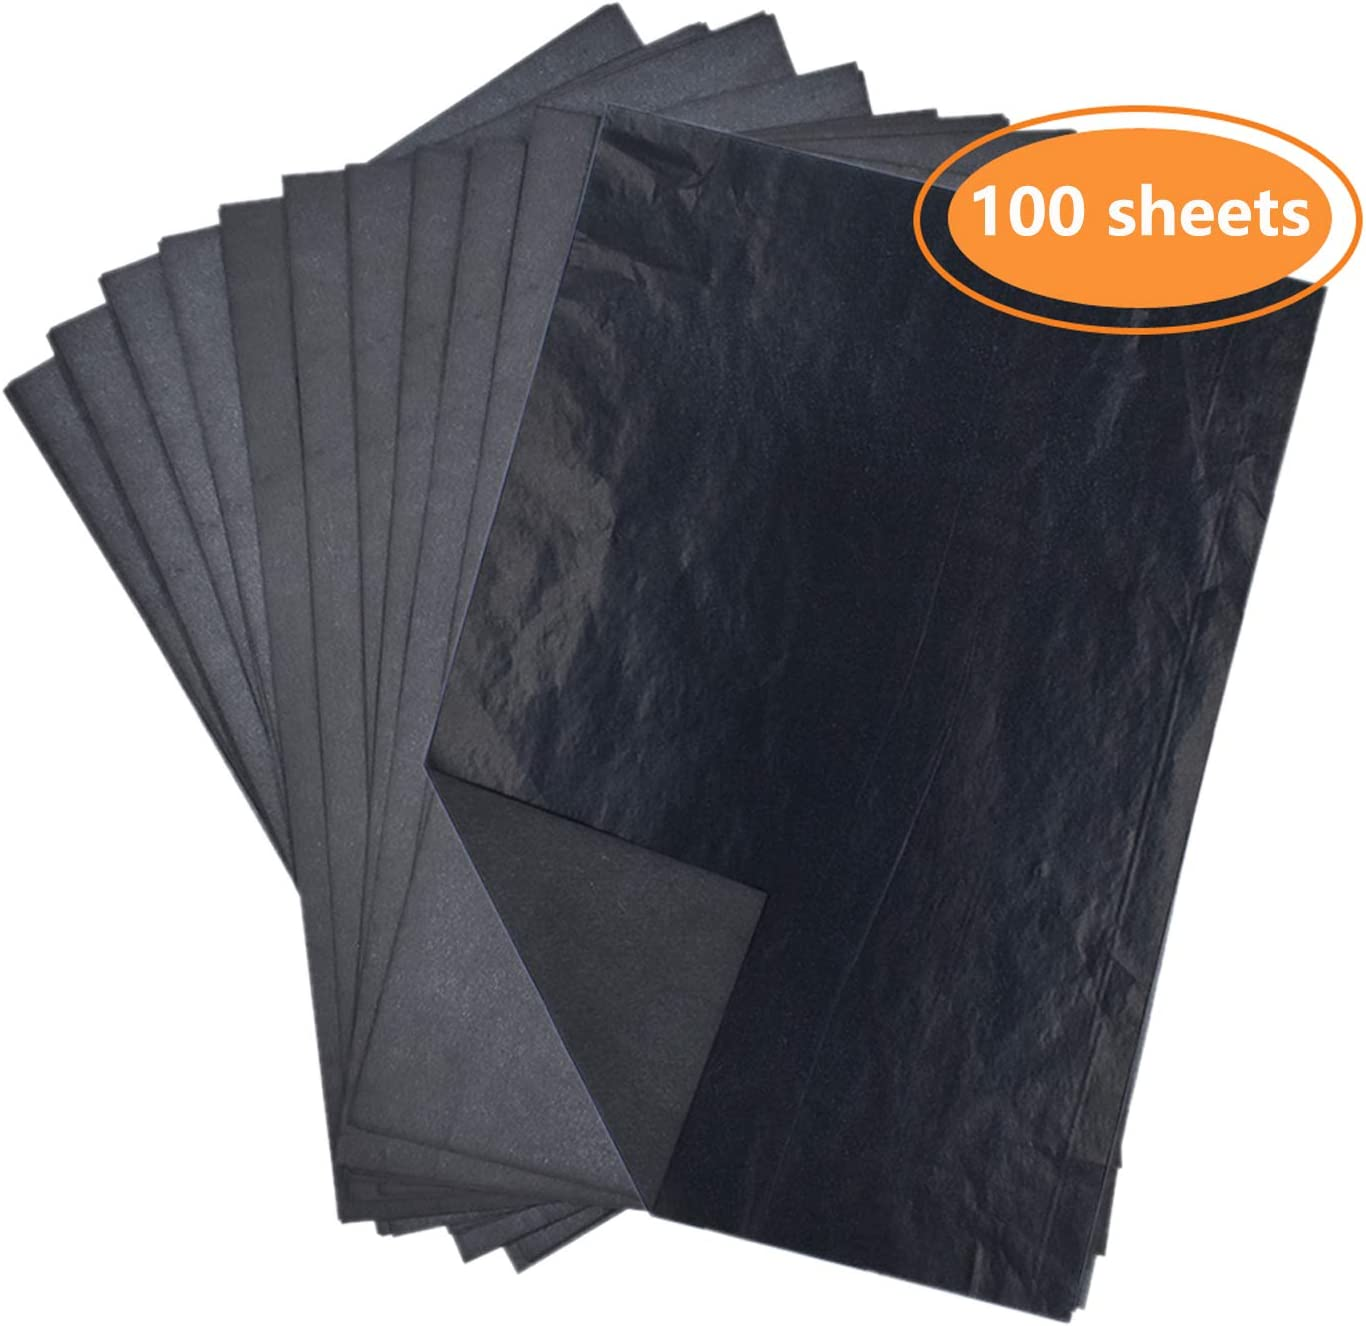 LiXiongBao 100 Sheets Black Carbon Transfer Tracing Paper for Wood 8.27 x 11.69 Inches Paper Canvas and Other Art Surfaces